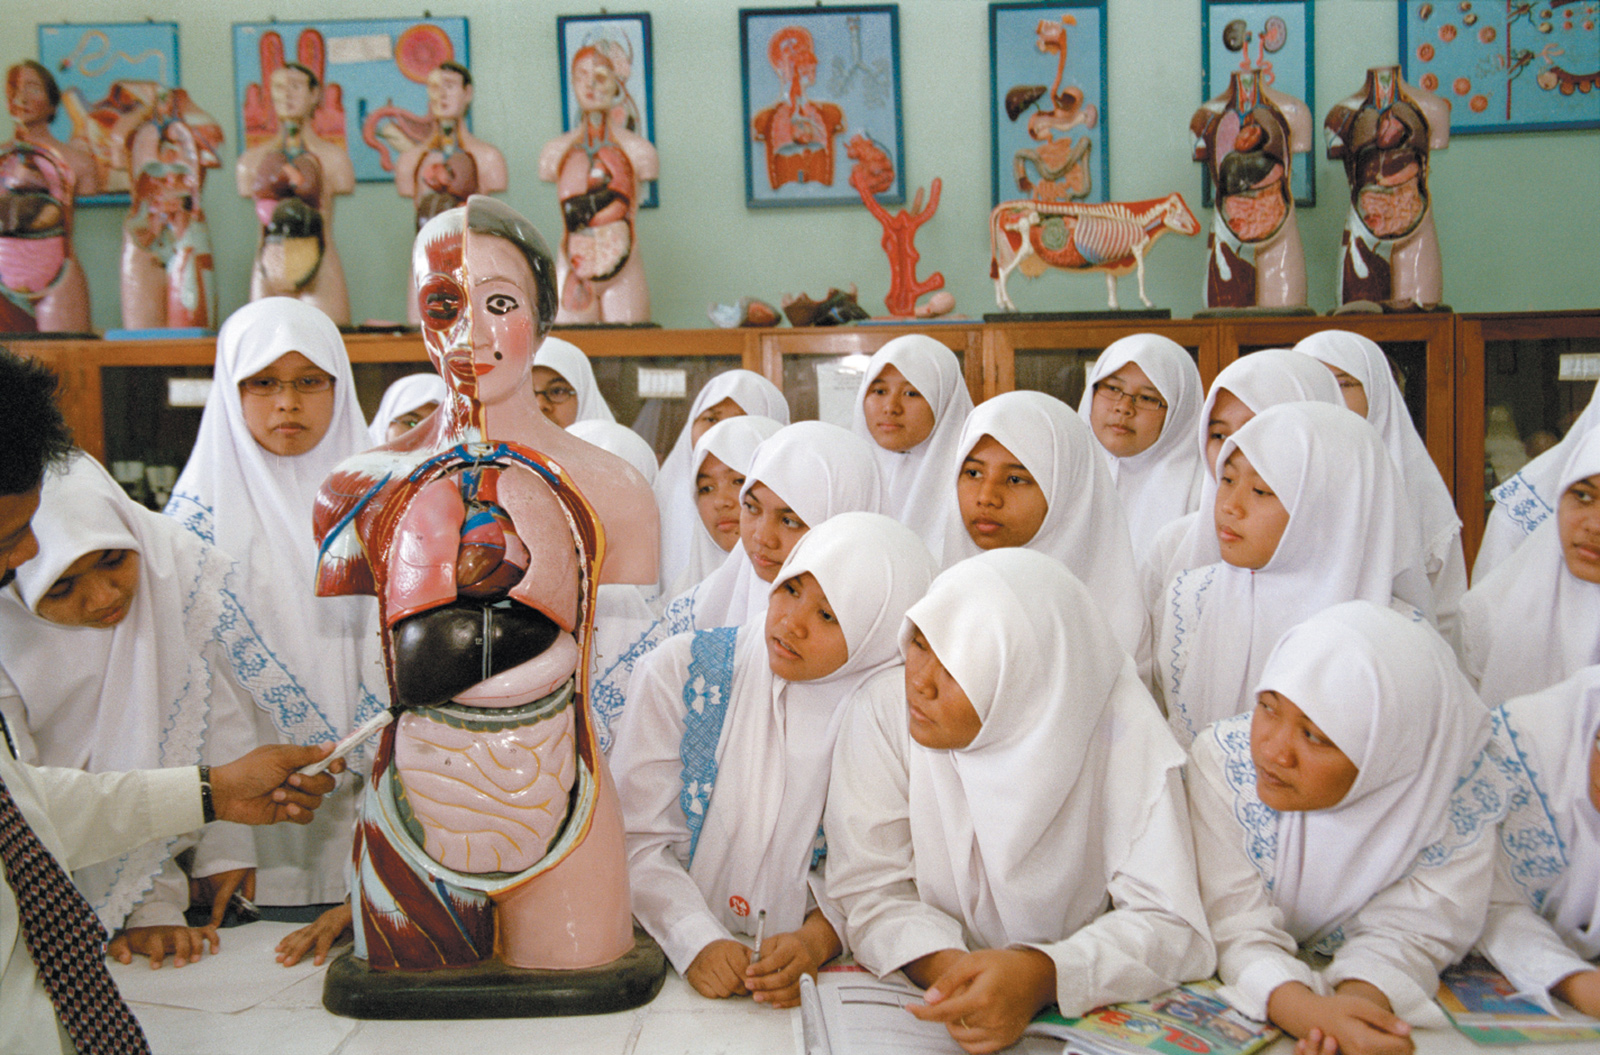 Students in a biology class at a religious boarding school run by the Muhammadiyah organization, Solo, Indonesia, 2004